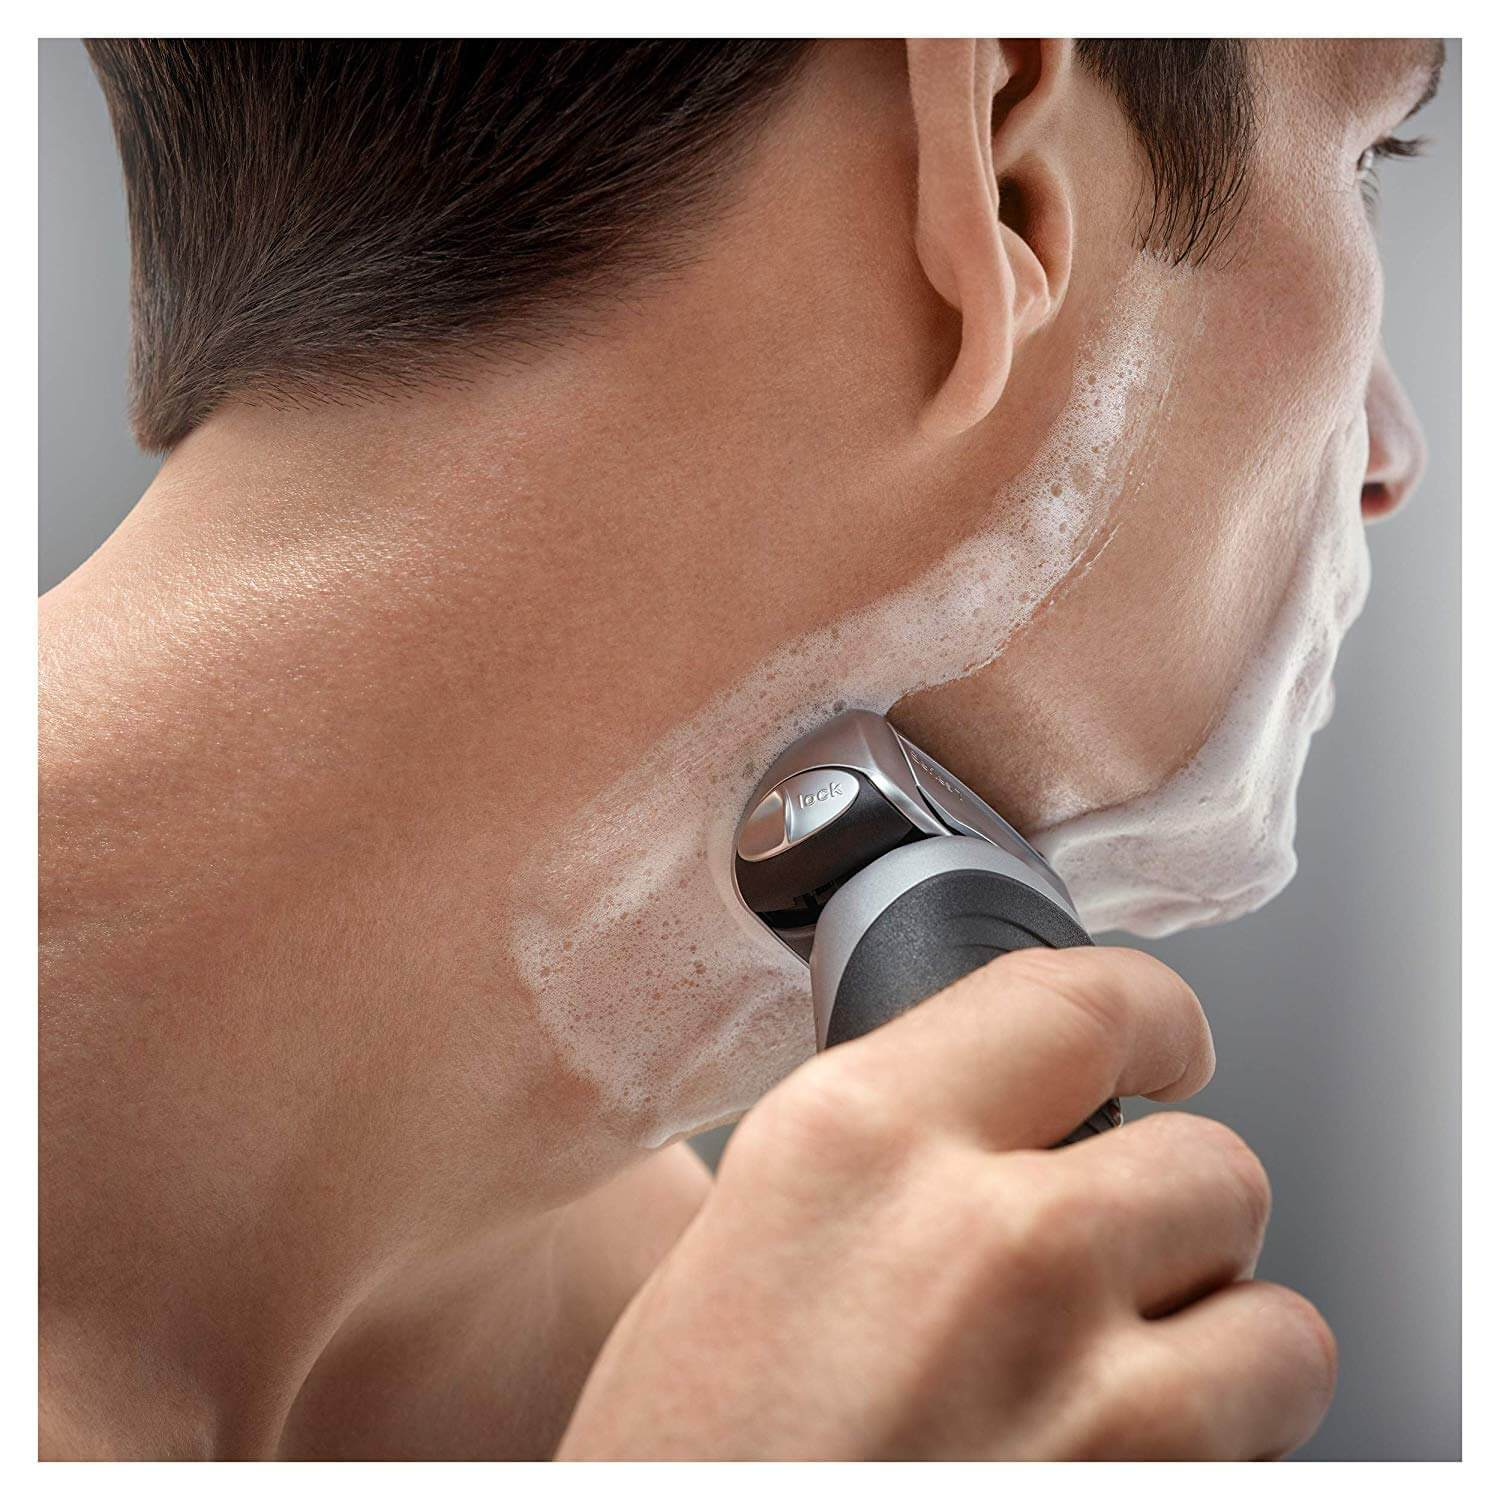 Braun series 790cc-4 electric shaver is one of the best electric shavers brands